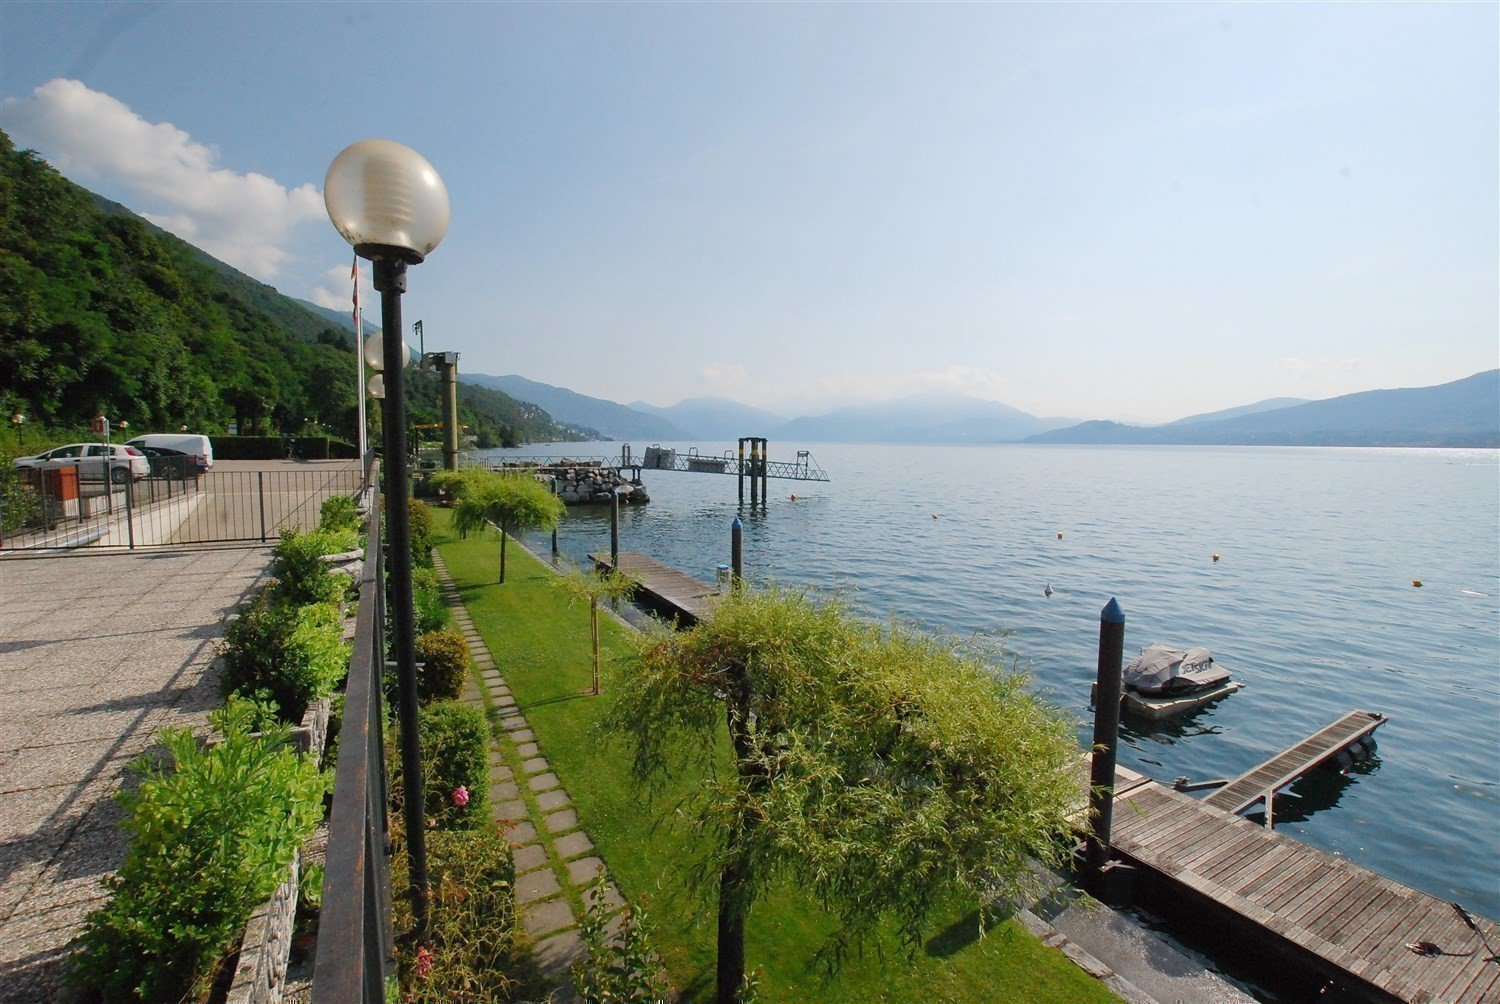 apartment in front of the lake for sale in Ghiffa- private garden